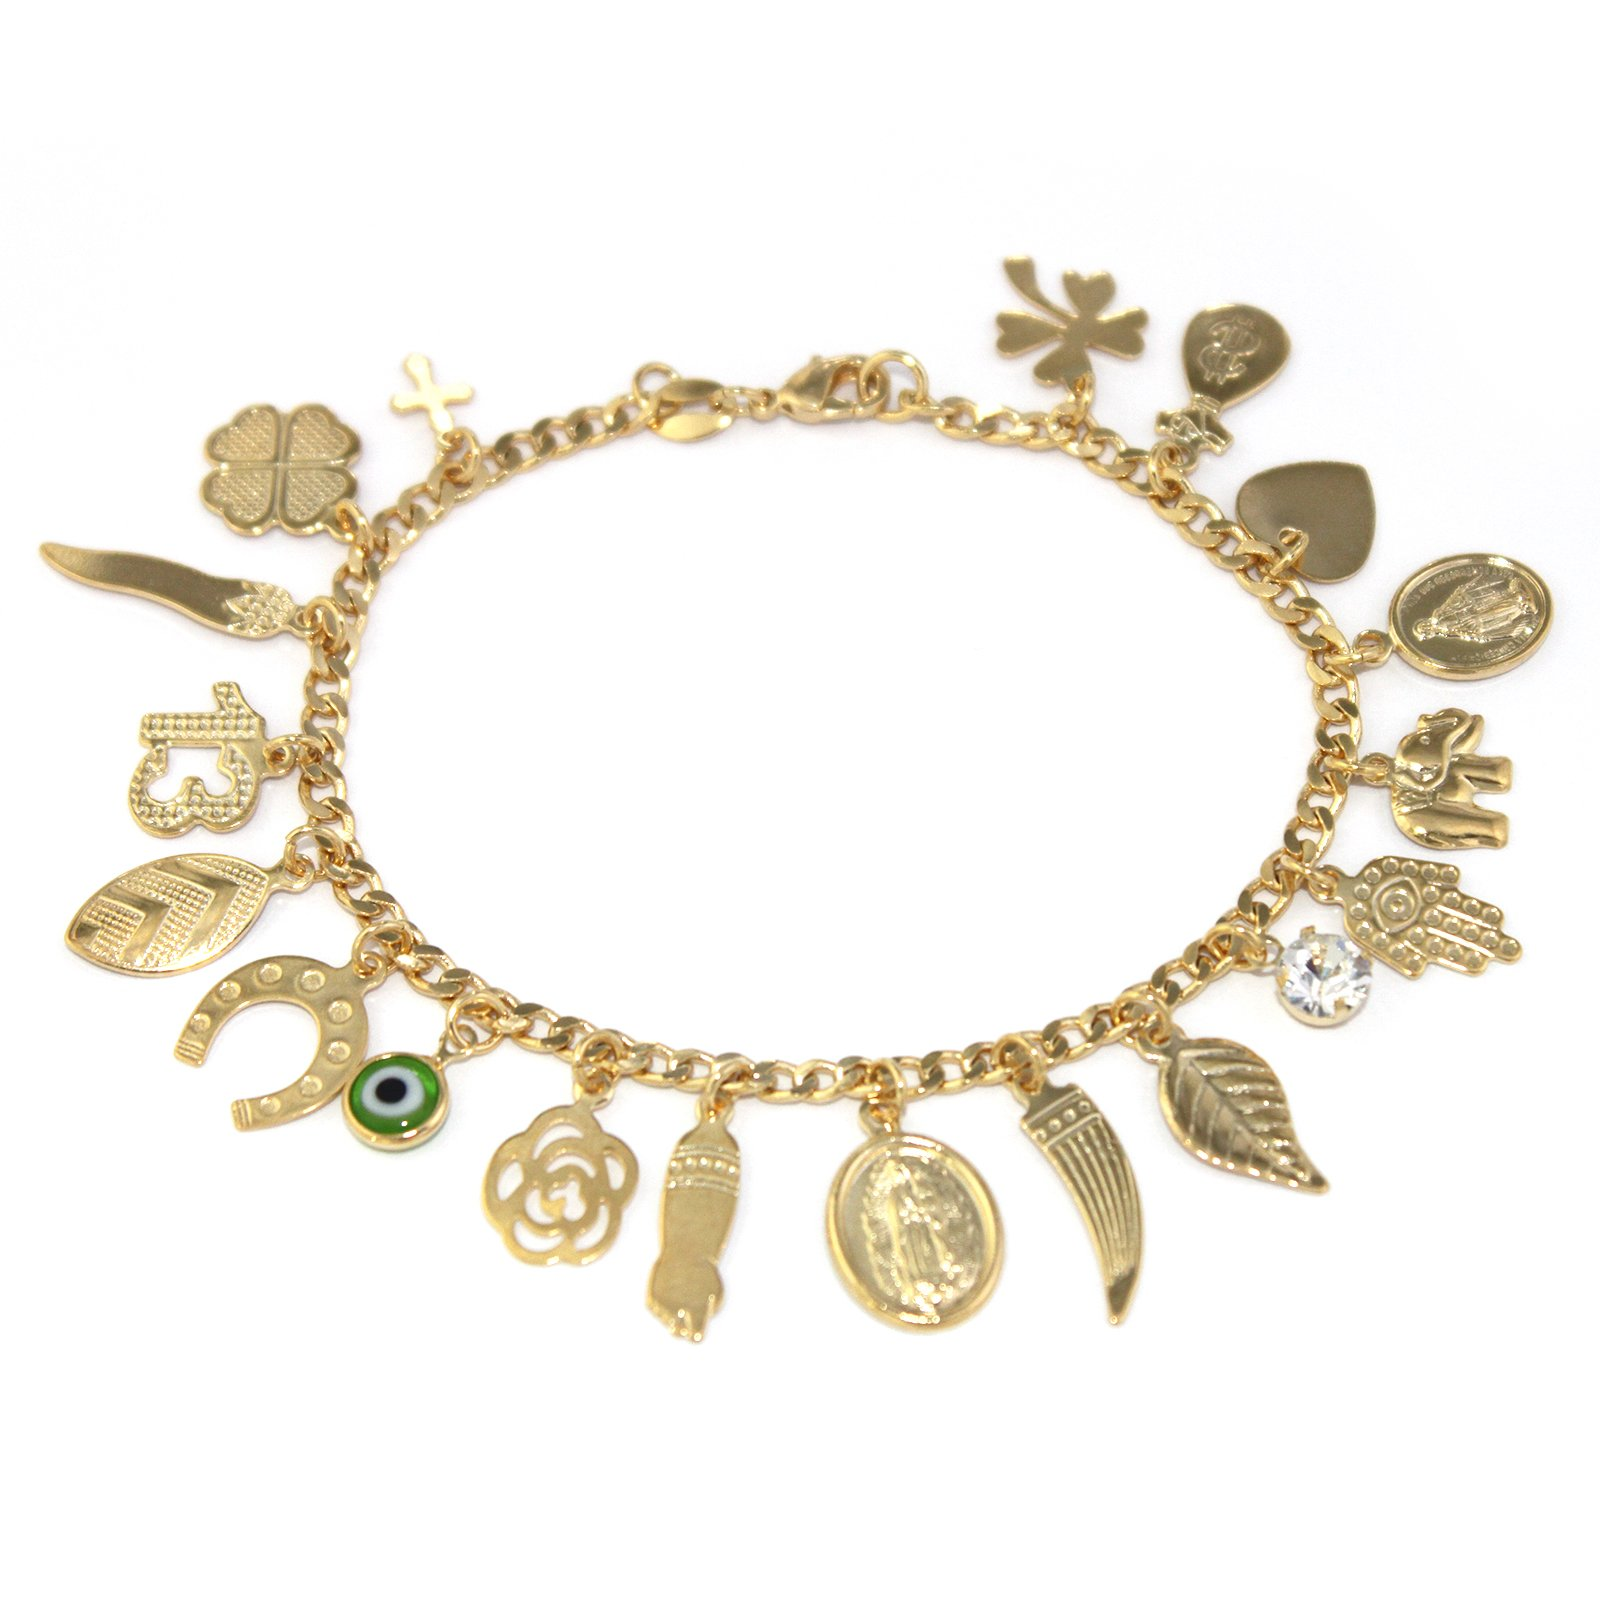 Fine Jewelry Paradise Gold Filled Anklet Bracelet Lucky Charms 9.5 inches Length Evil Eye Protection and Good Luck Amulet Foot Ankle